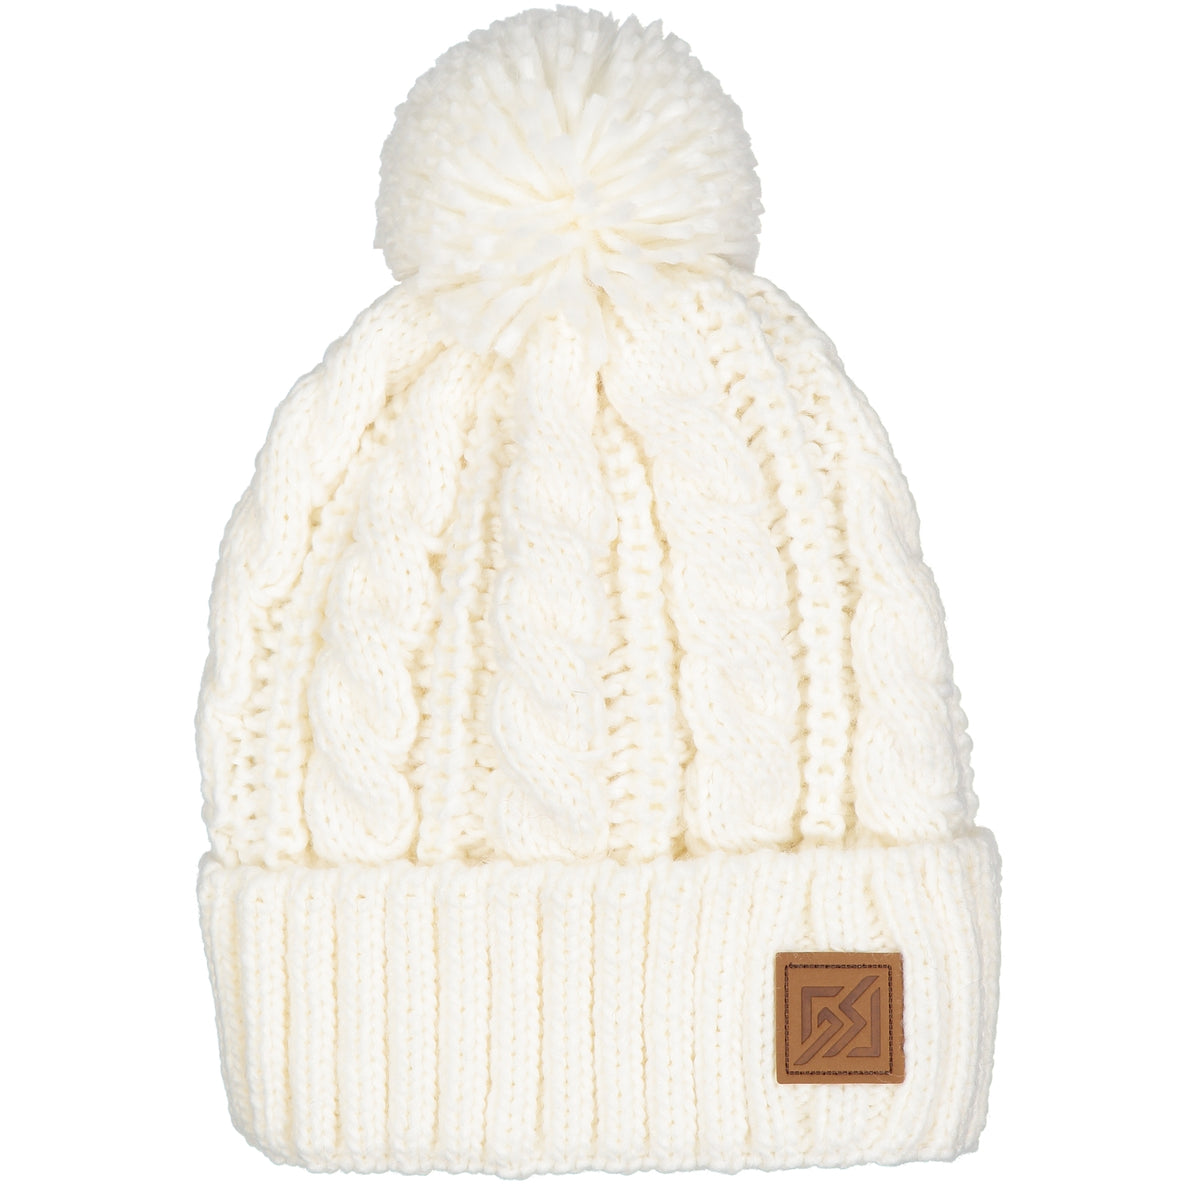 19401148eac82 Catmandoo Minkus Winter Knit Bobble Hat in White - The Golf Outfit